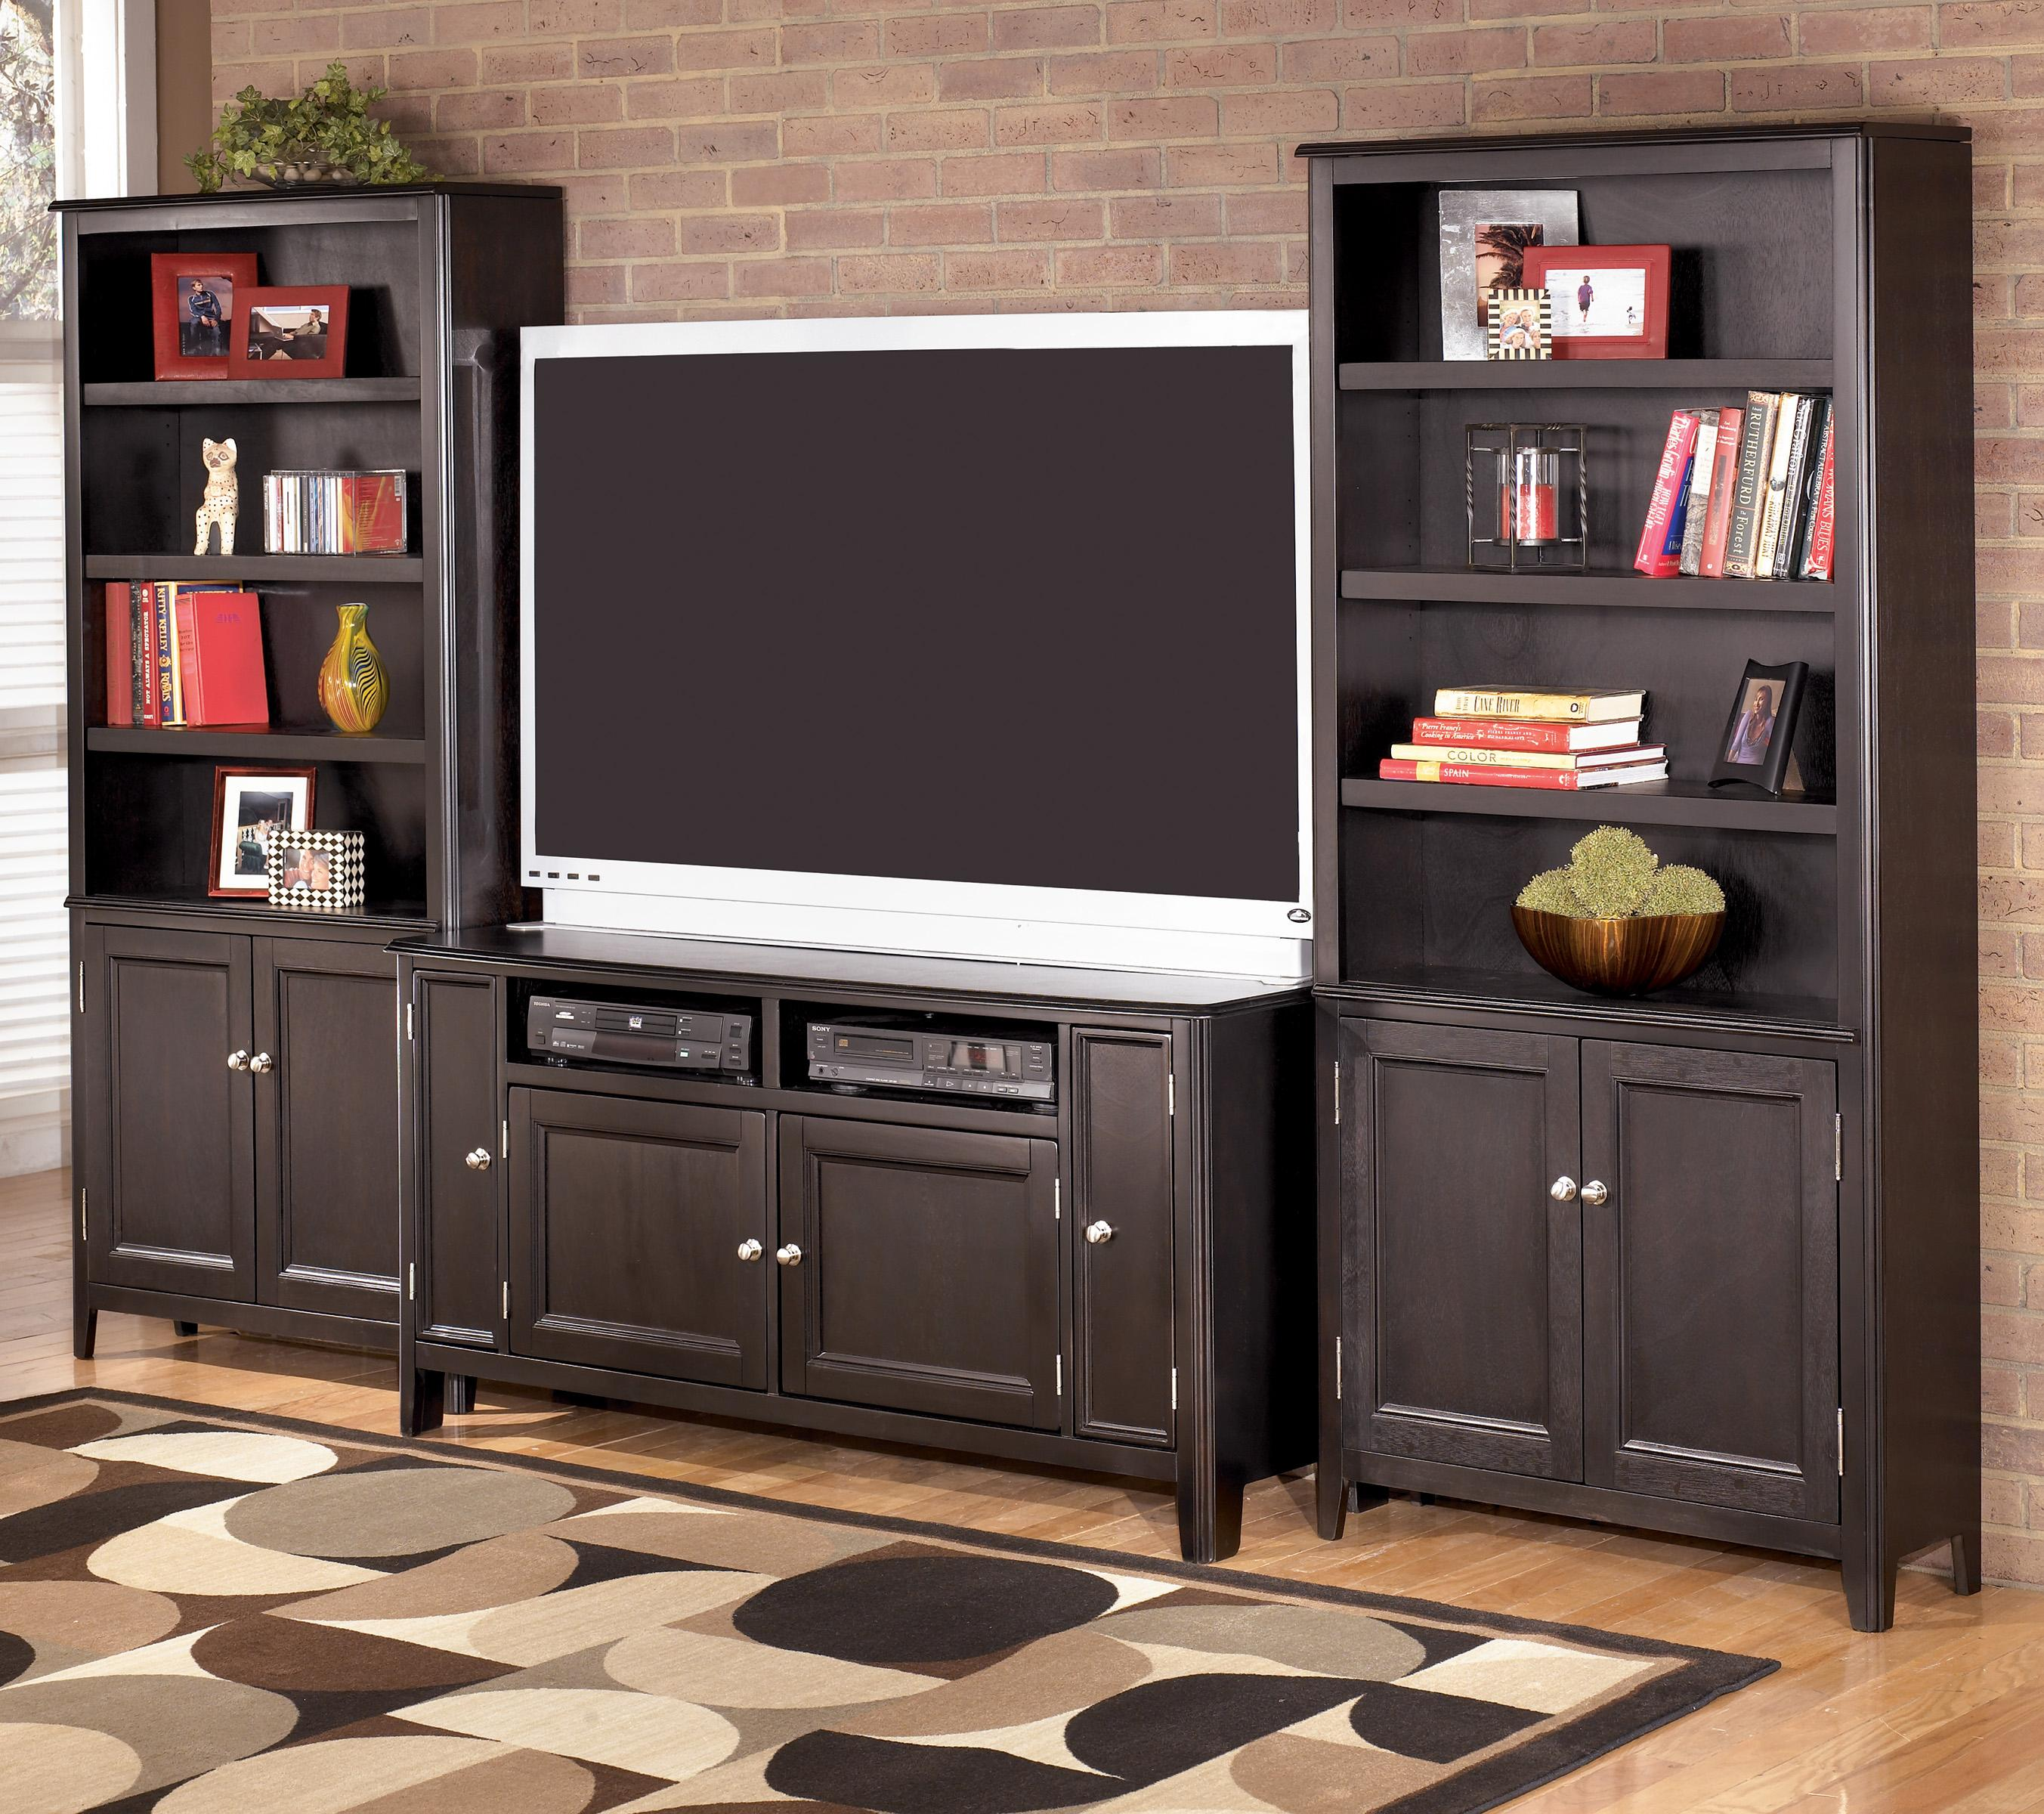 Signature Design By Ashley Carlyle 60 Inch TV Stand U0026 2 Large Door  Bookcases   AHFA   Wall Unit Dealer Locator